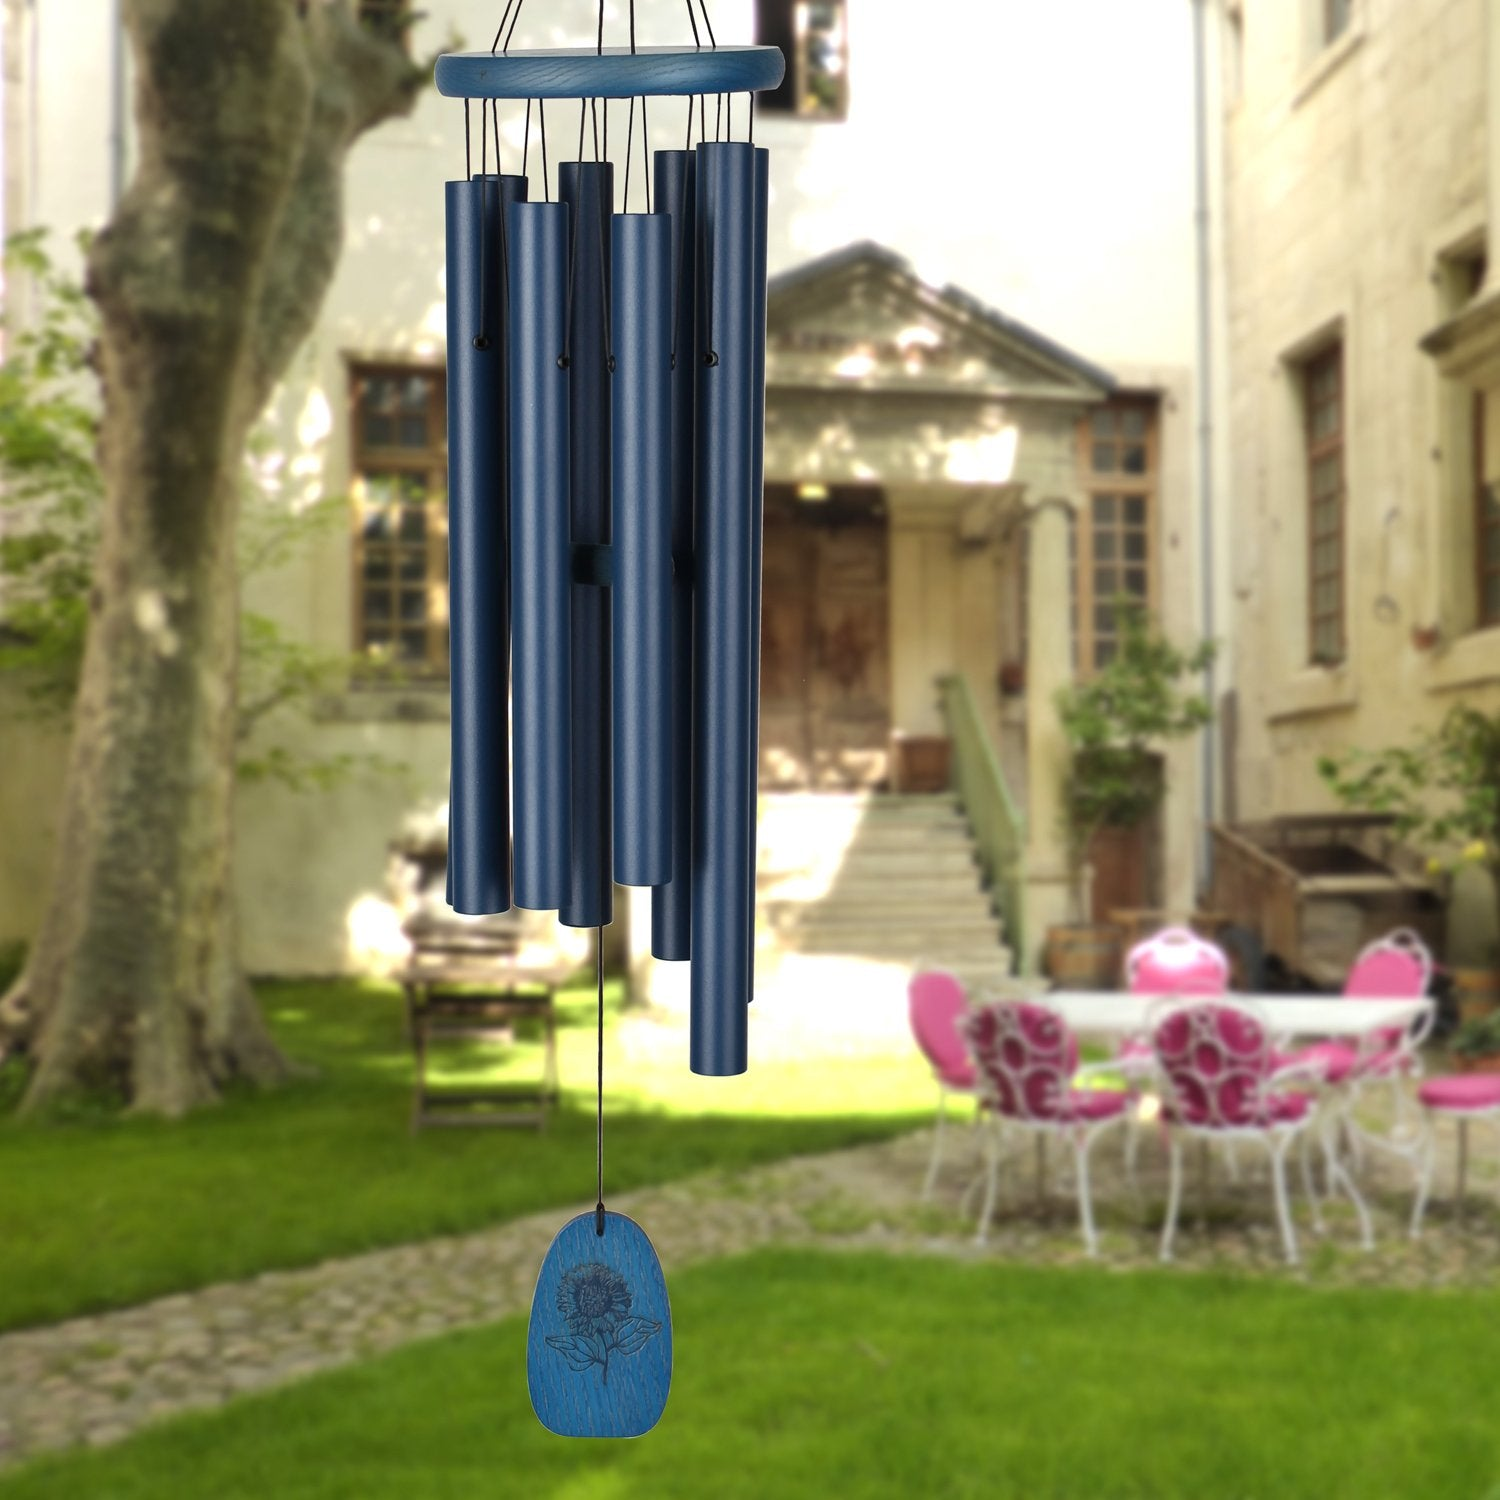 Chimes of Provence lifestyle image